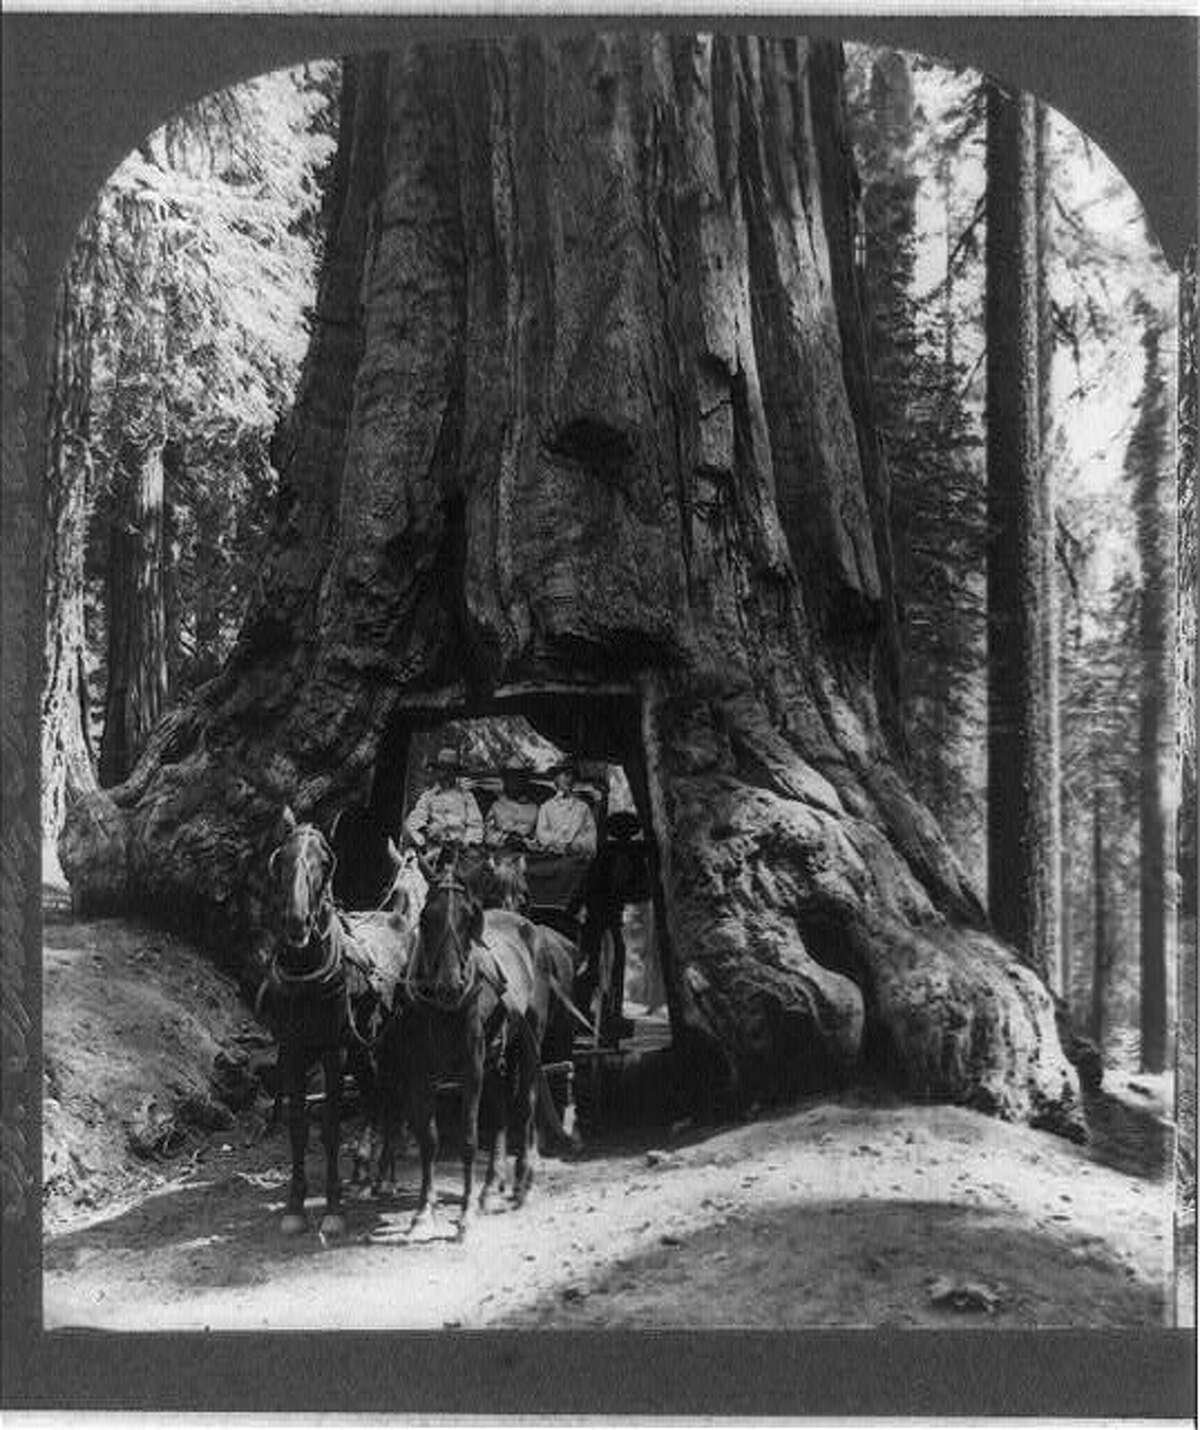 The famous Wawona tunnel tree in Mariposa Grove. A stage coach is seen passing through it from this 1905 stereograph.